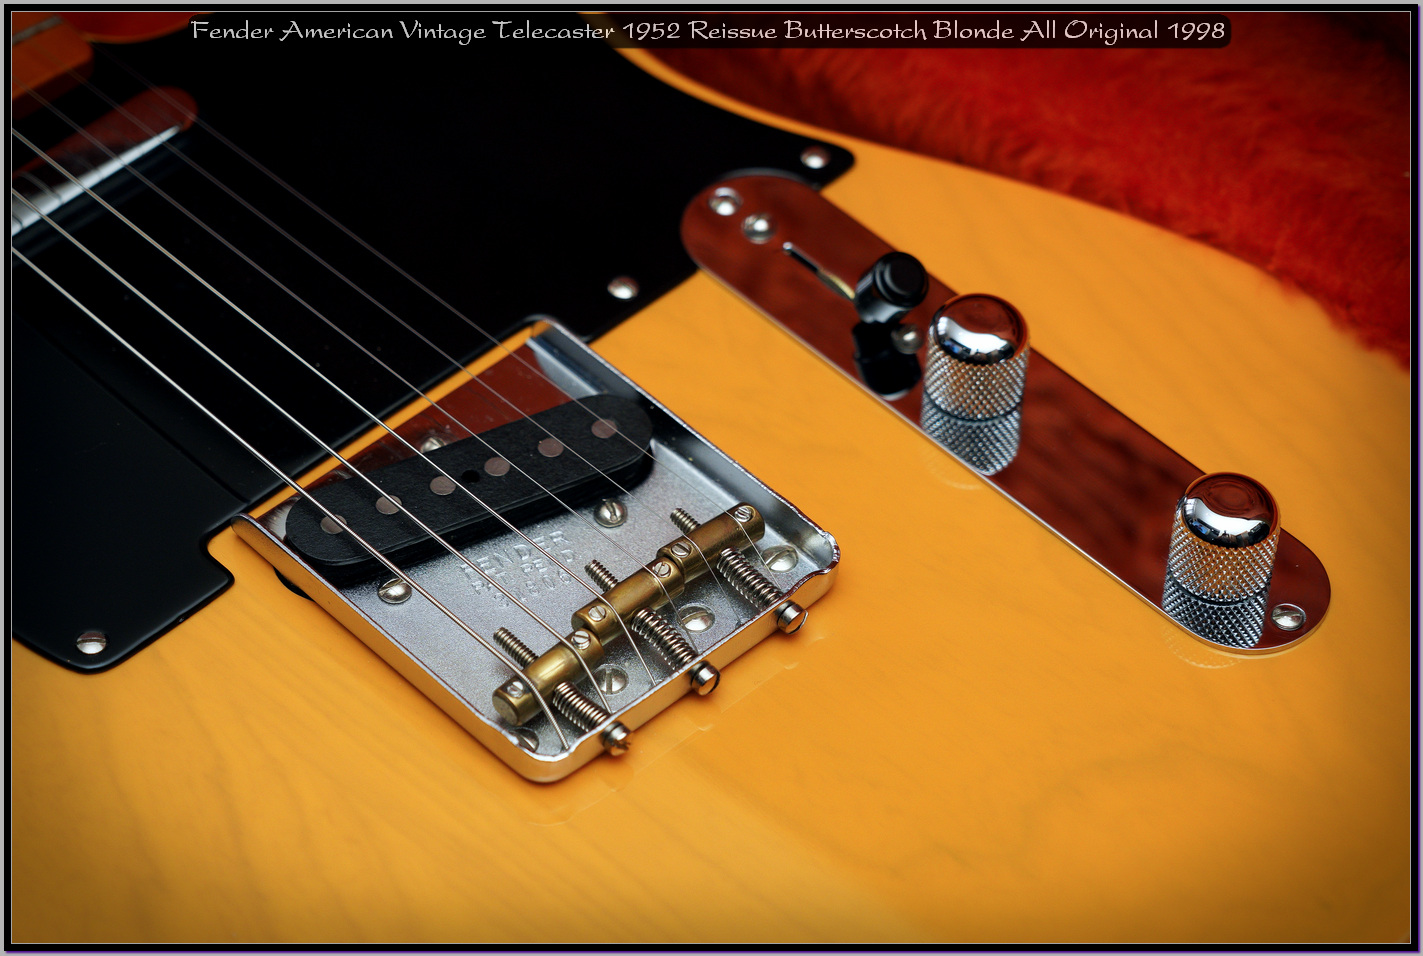 Fender American Vintage Telecaster 1952 Reissue Butterscotch Blonde All Original 1998 12_x1440.jpg